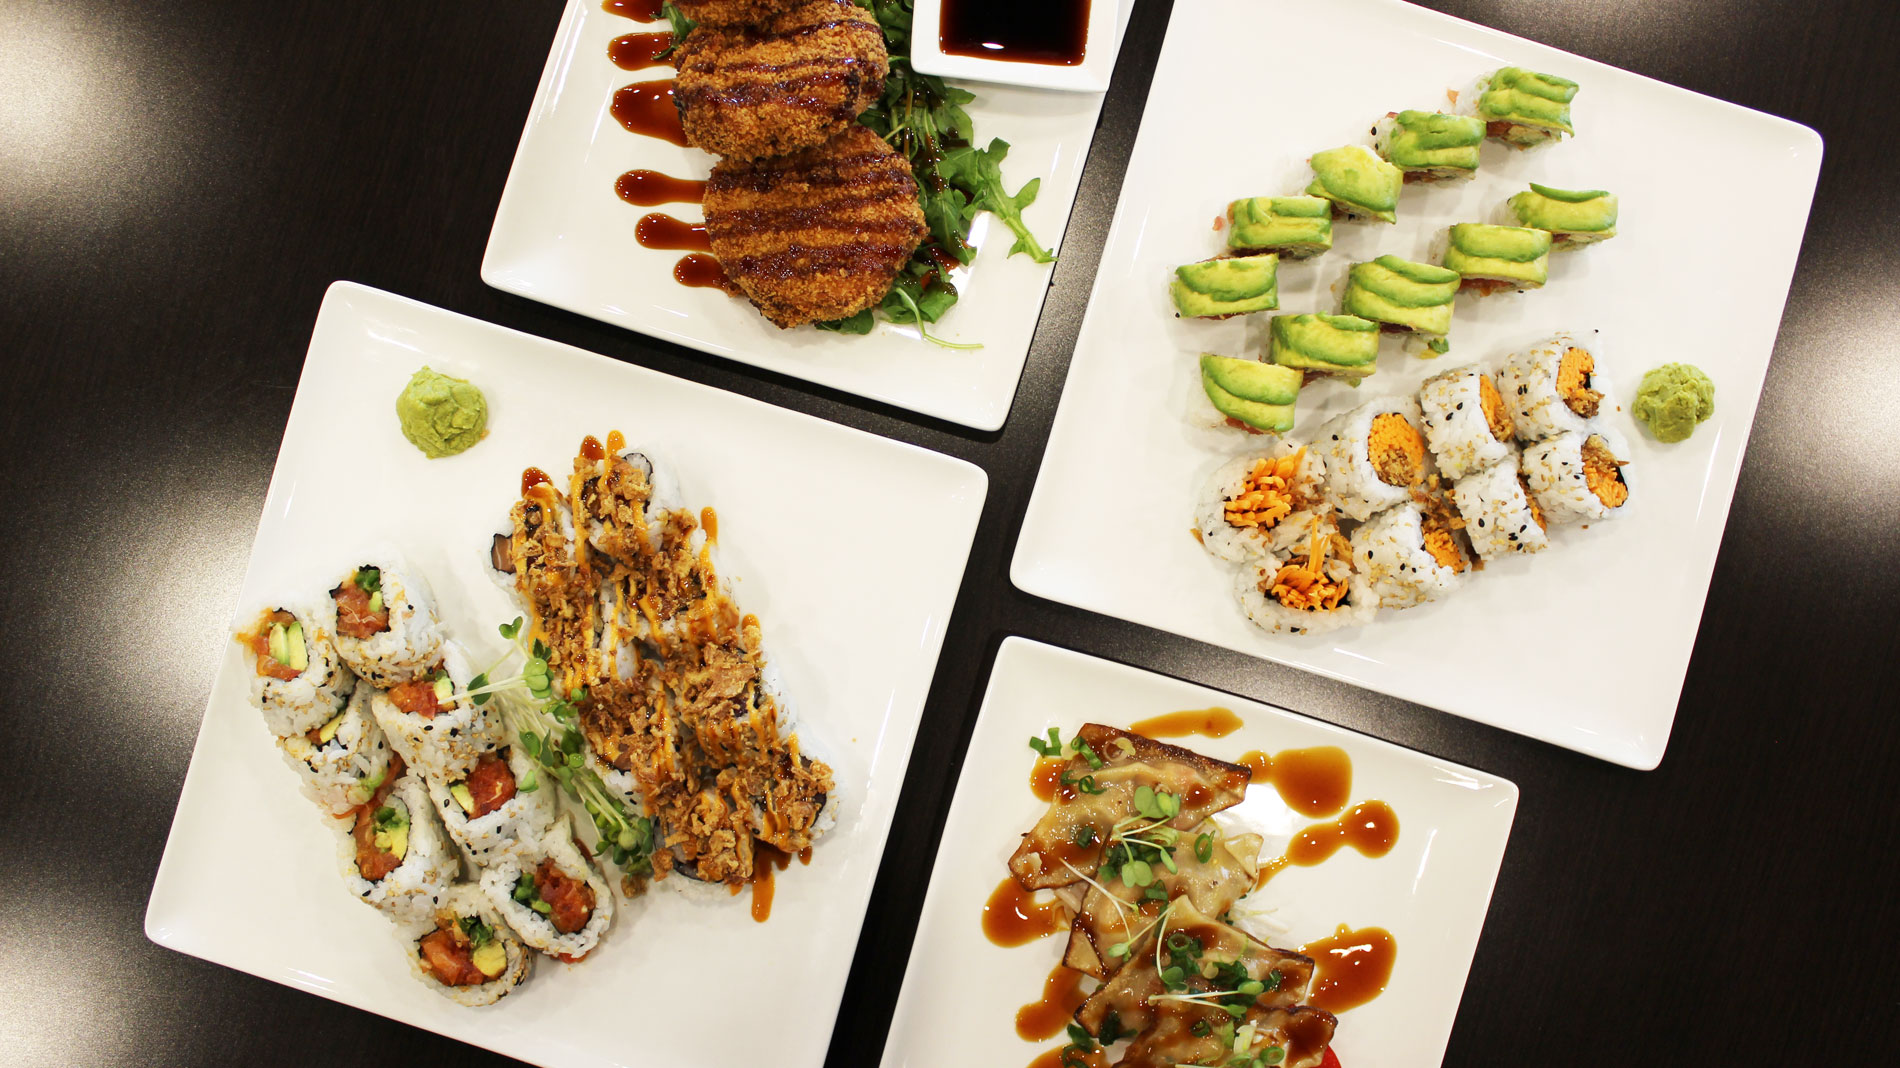 four square white plates holding sushi rolls and appetizers